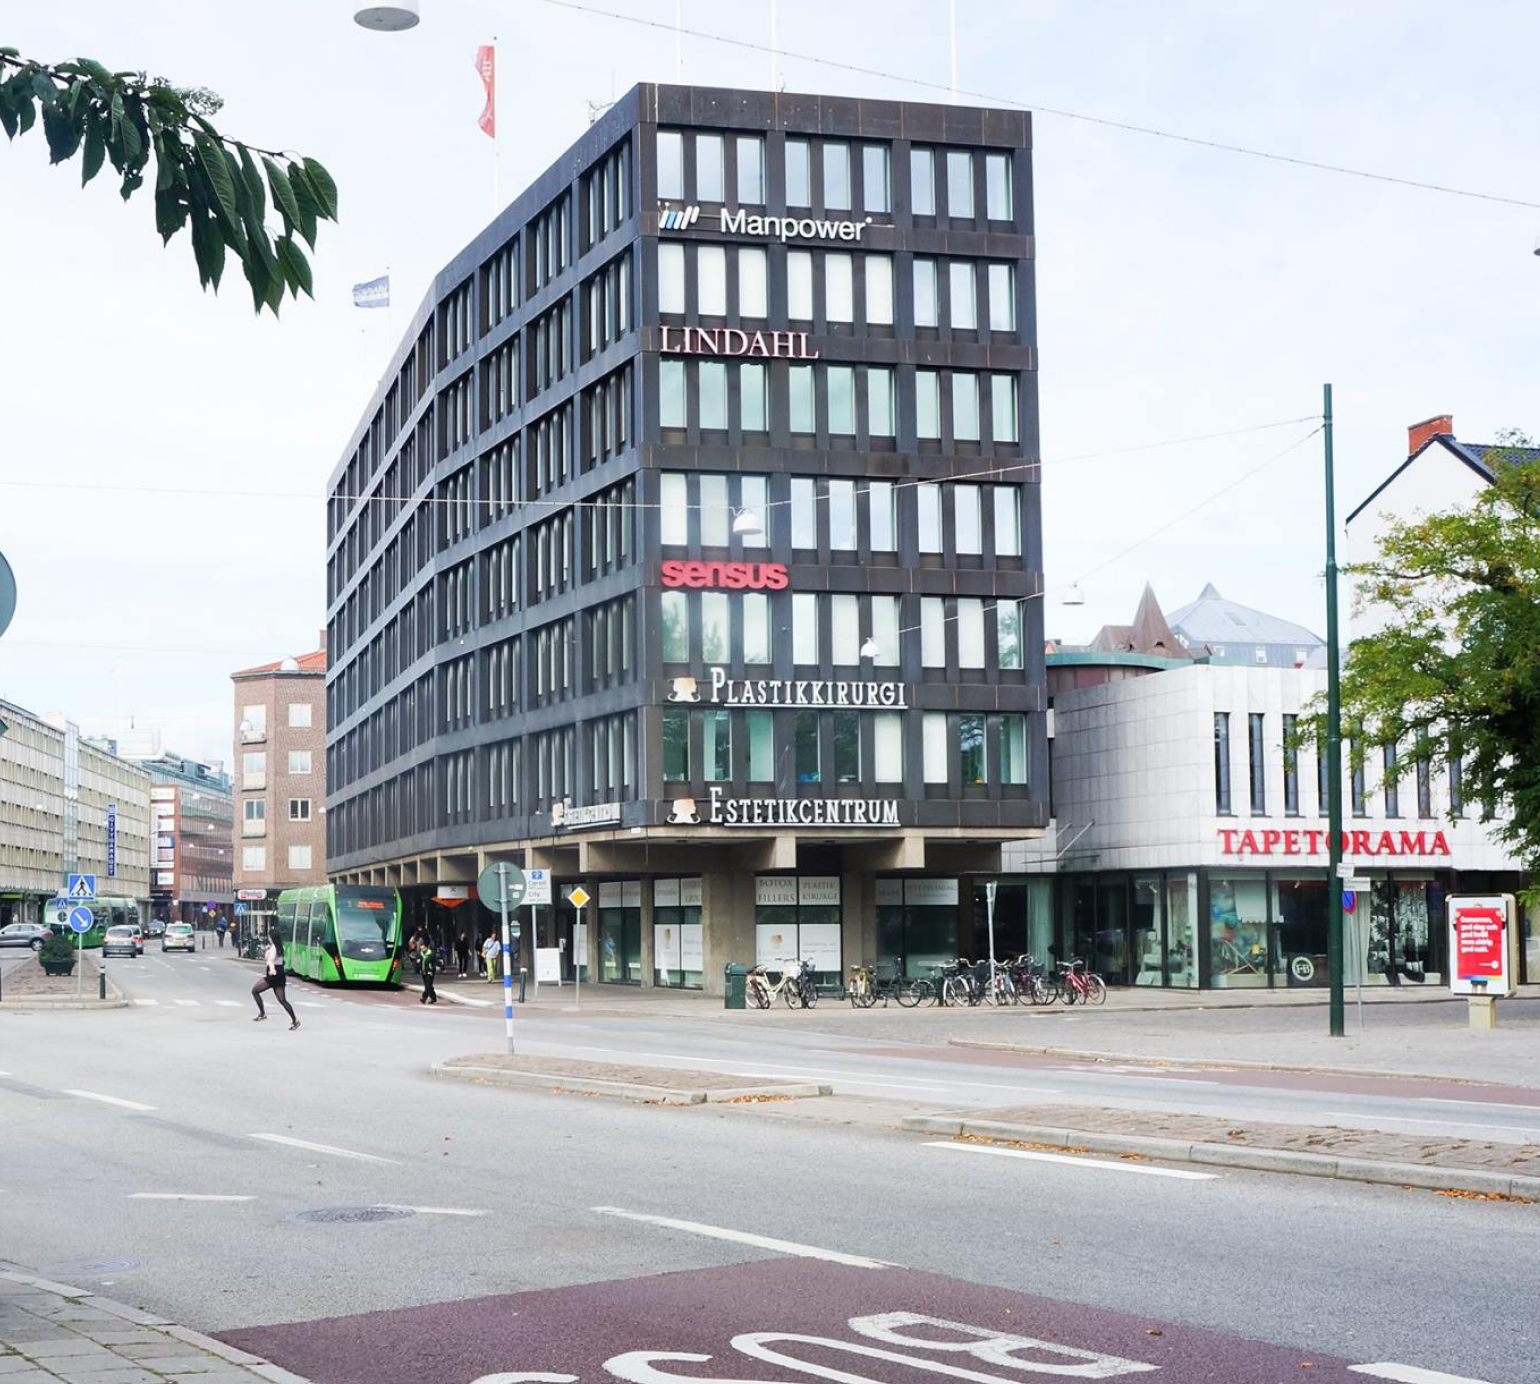 Estetikcentrum is located in central Malmö